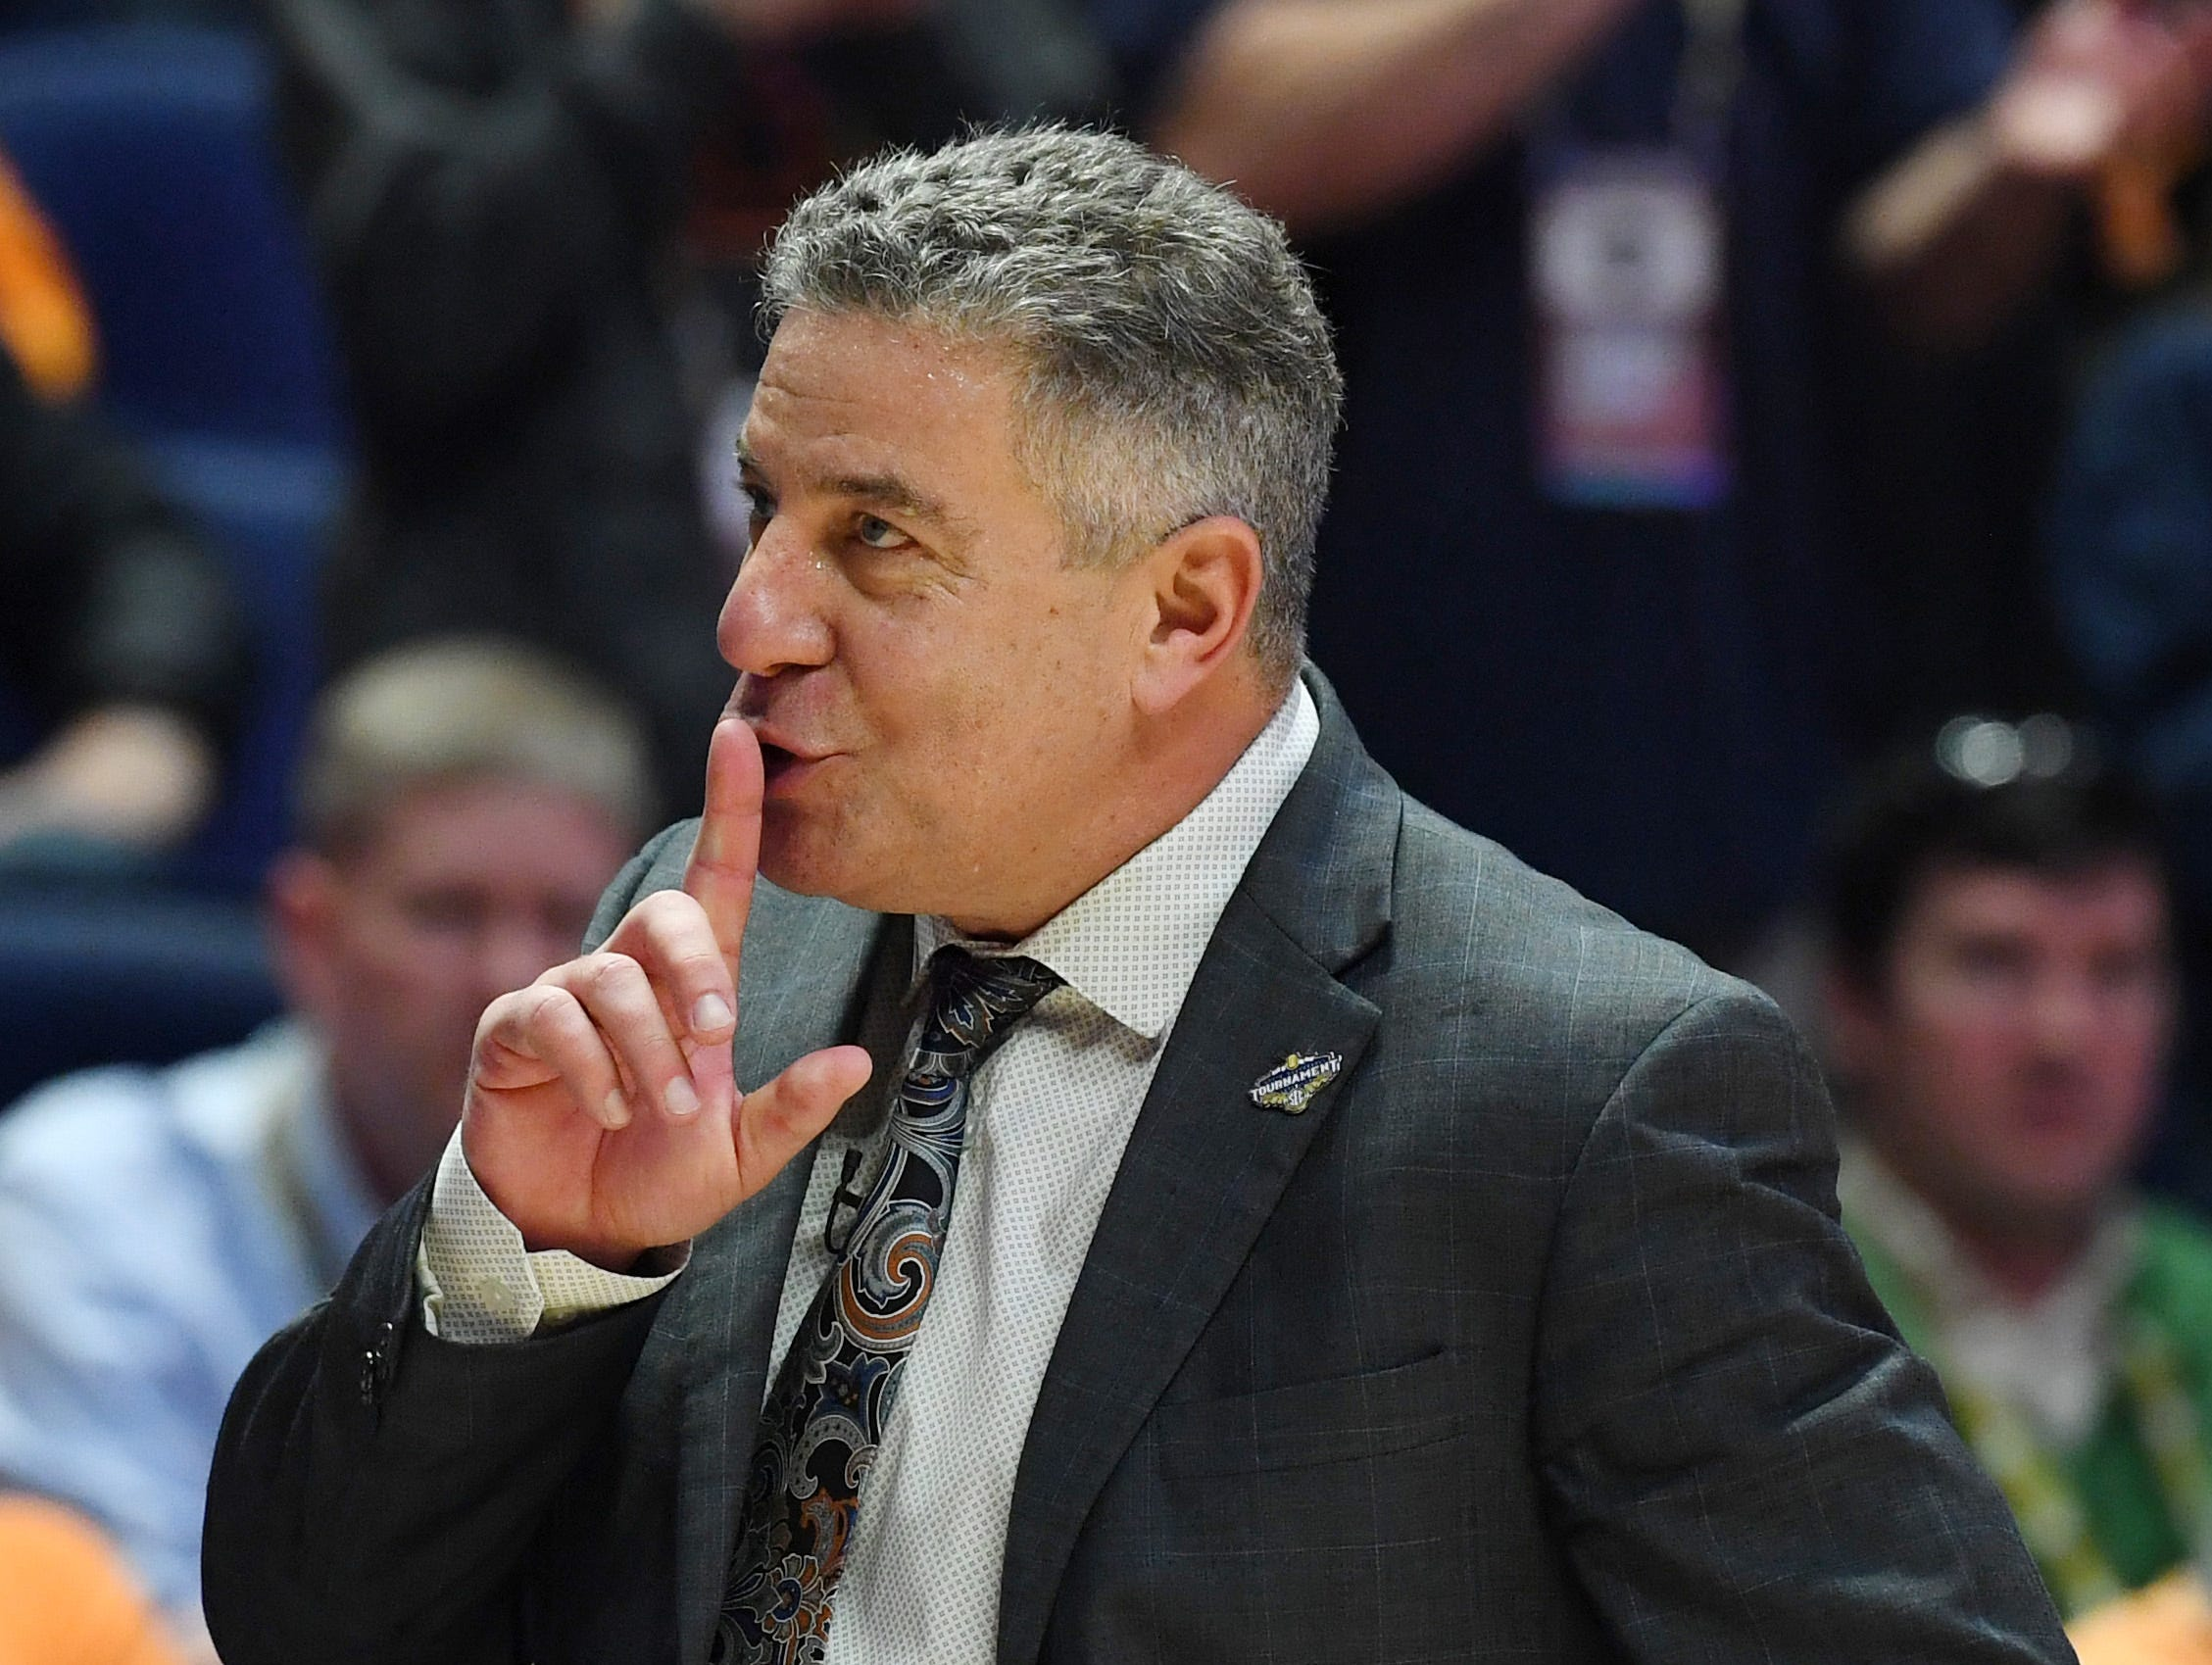 Mar 17, 2019; Nashville, TN, USA; Auburn Tigers head coach Bruce Pearl during the second half against the Tennessee Volunteers in the SEC conference tournament championship game at Bridgestone Arena. Mandatory Credit: Christopher Hanewinckel-USA TODAY Sports